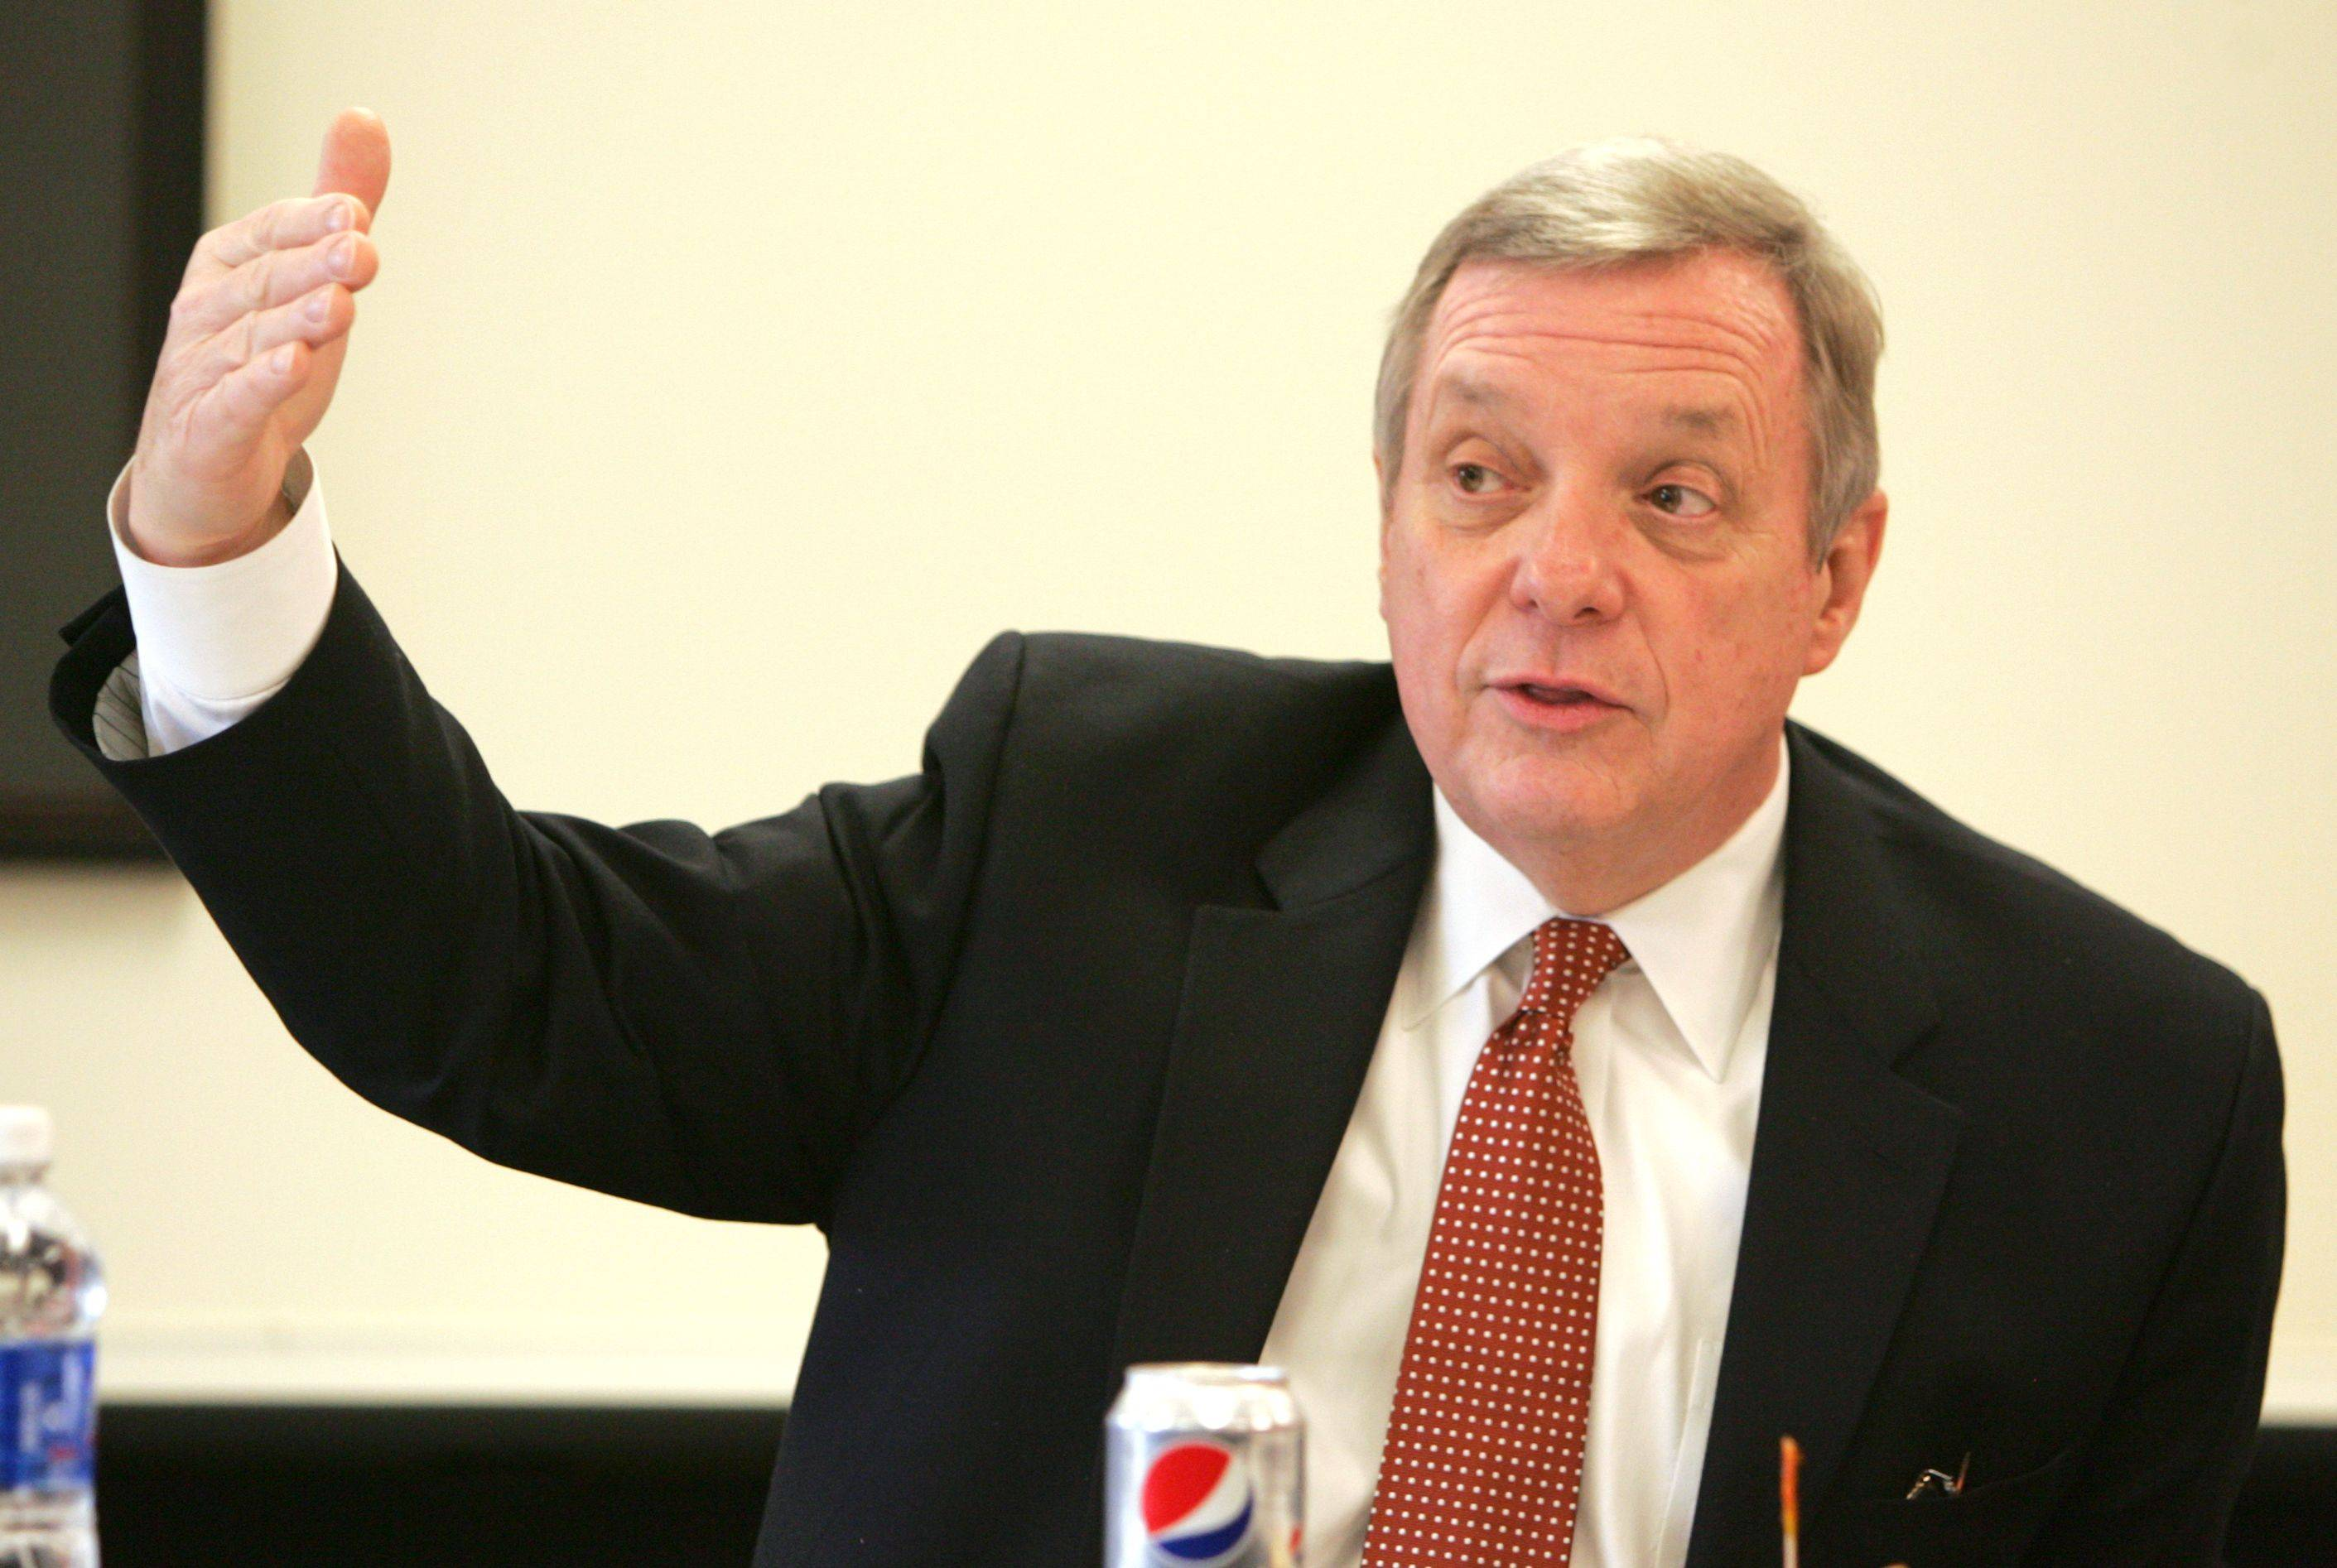 Sen. Dick Durbin promised Thursday to push a change to federal legislation that would allow online retailers to collect Illinois sales tax at the time of a purchase.